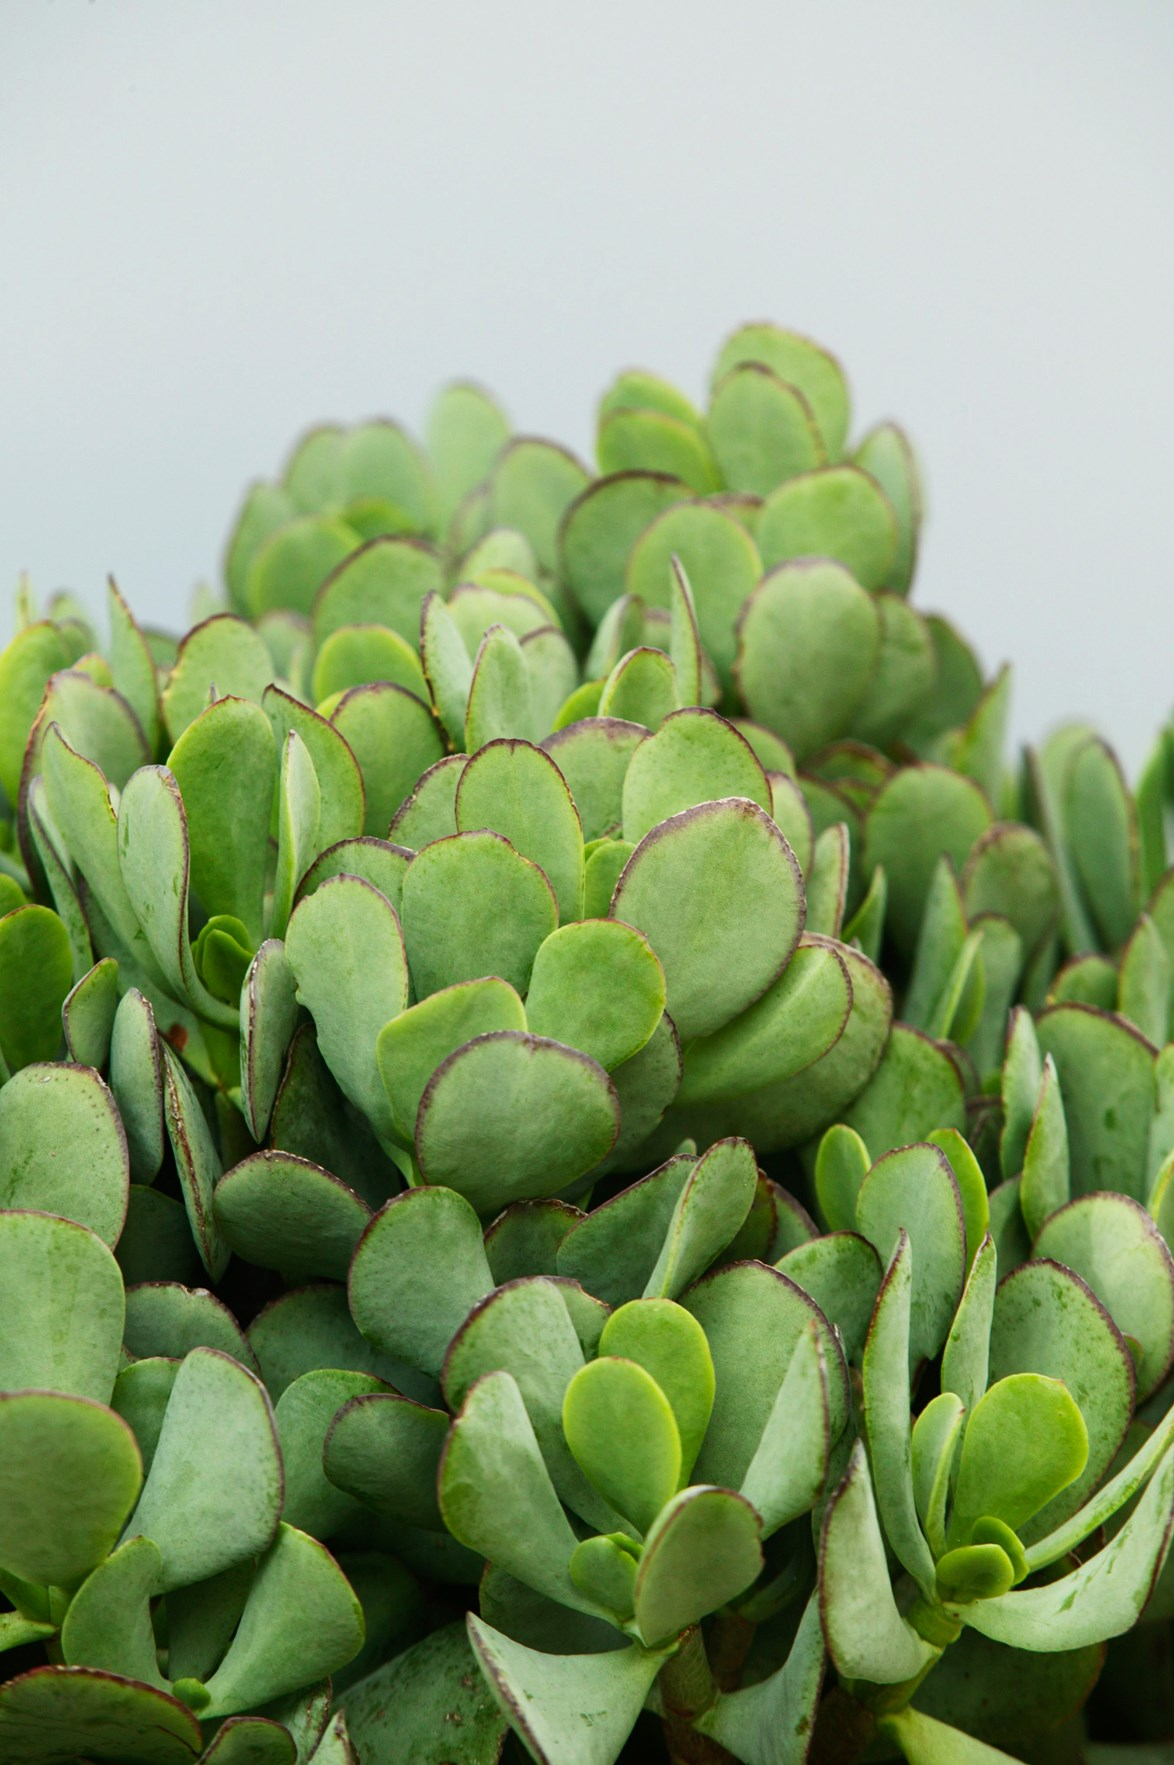 ade plant (Crassula ovate) A compact succulent with great form and pretty heads of pinky-white flowers. It practically thrives on neglect. *Photo:* Brent Wilson / *bauersyndication.com.au*